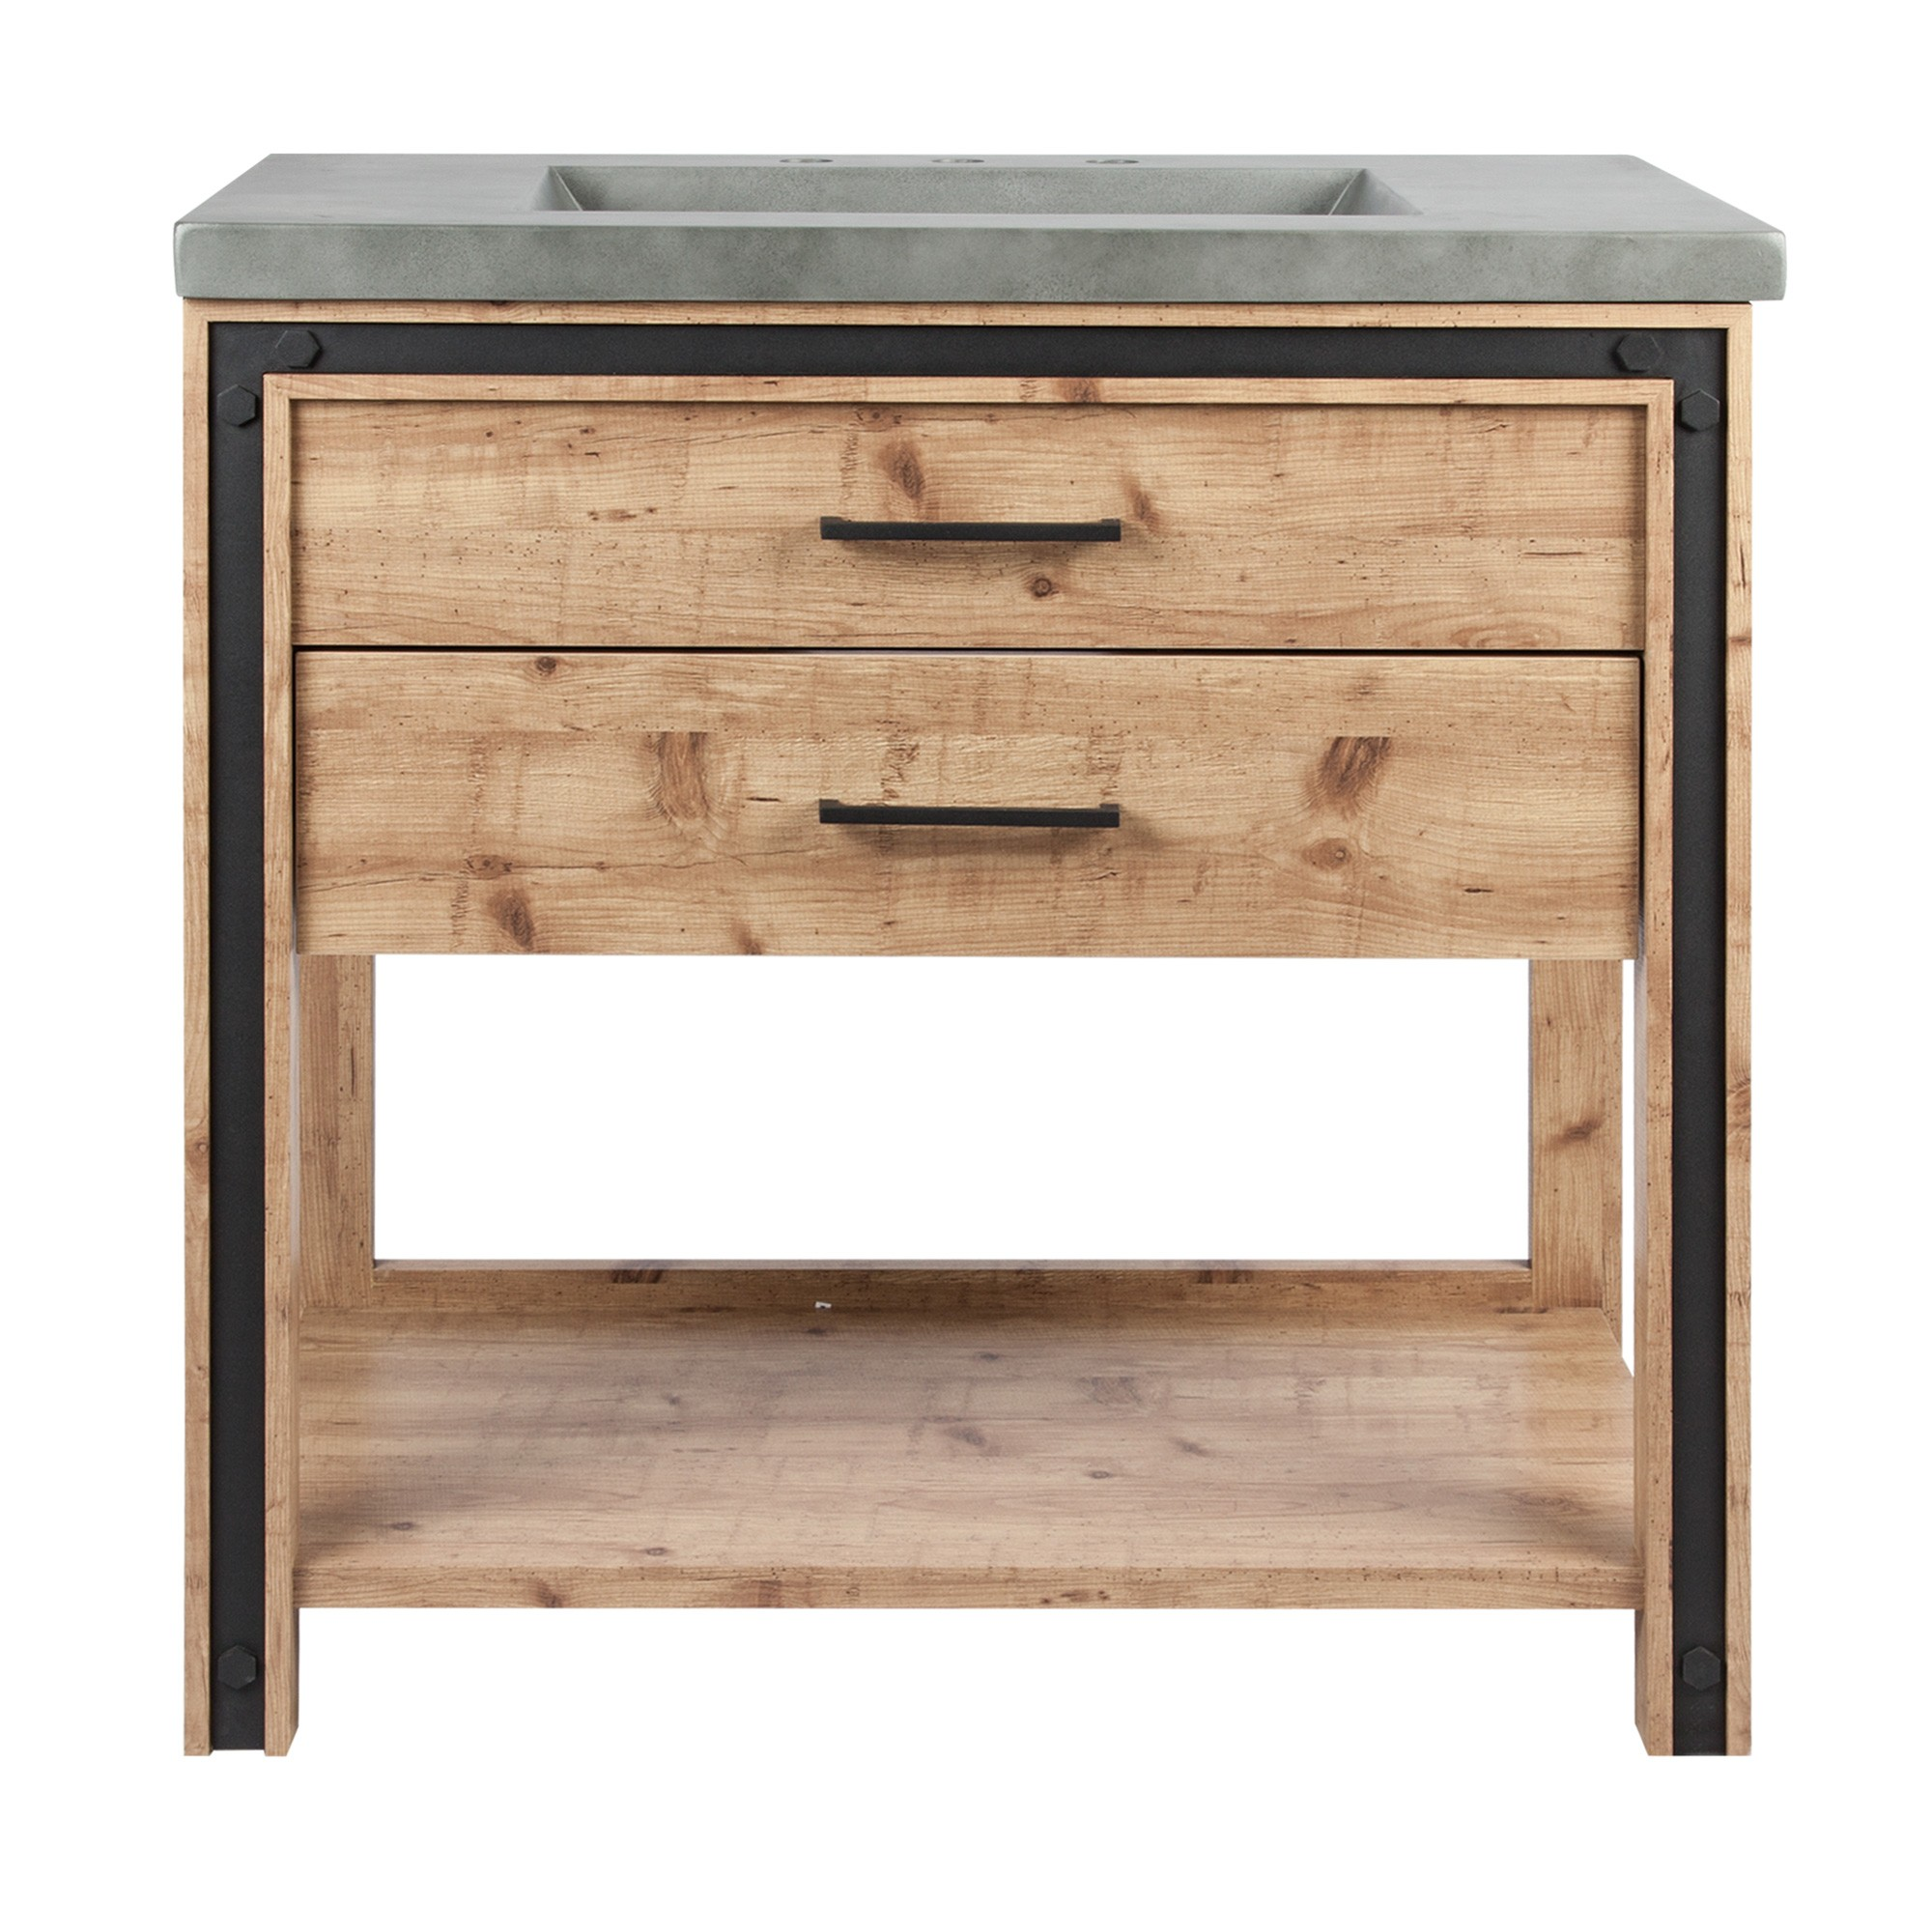 Lake Bathroom Vanity Cabinet with Basin, 90cm